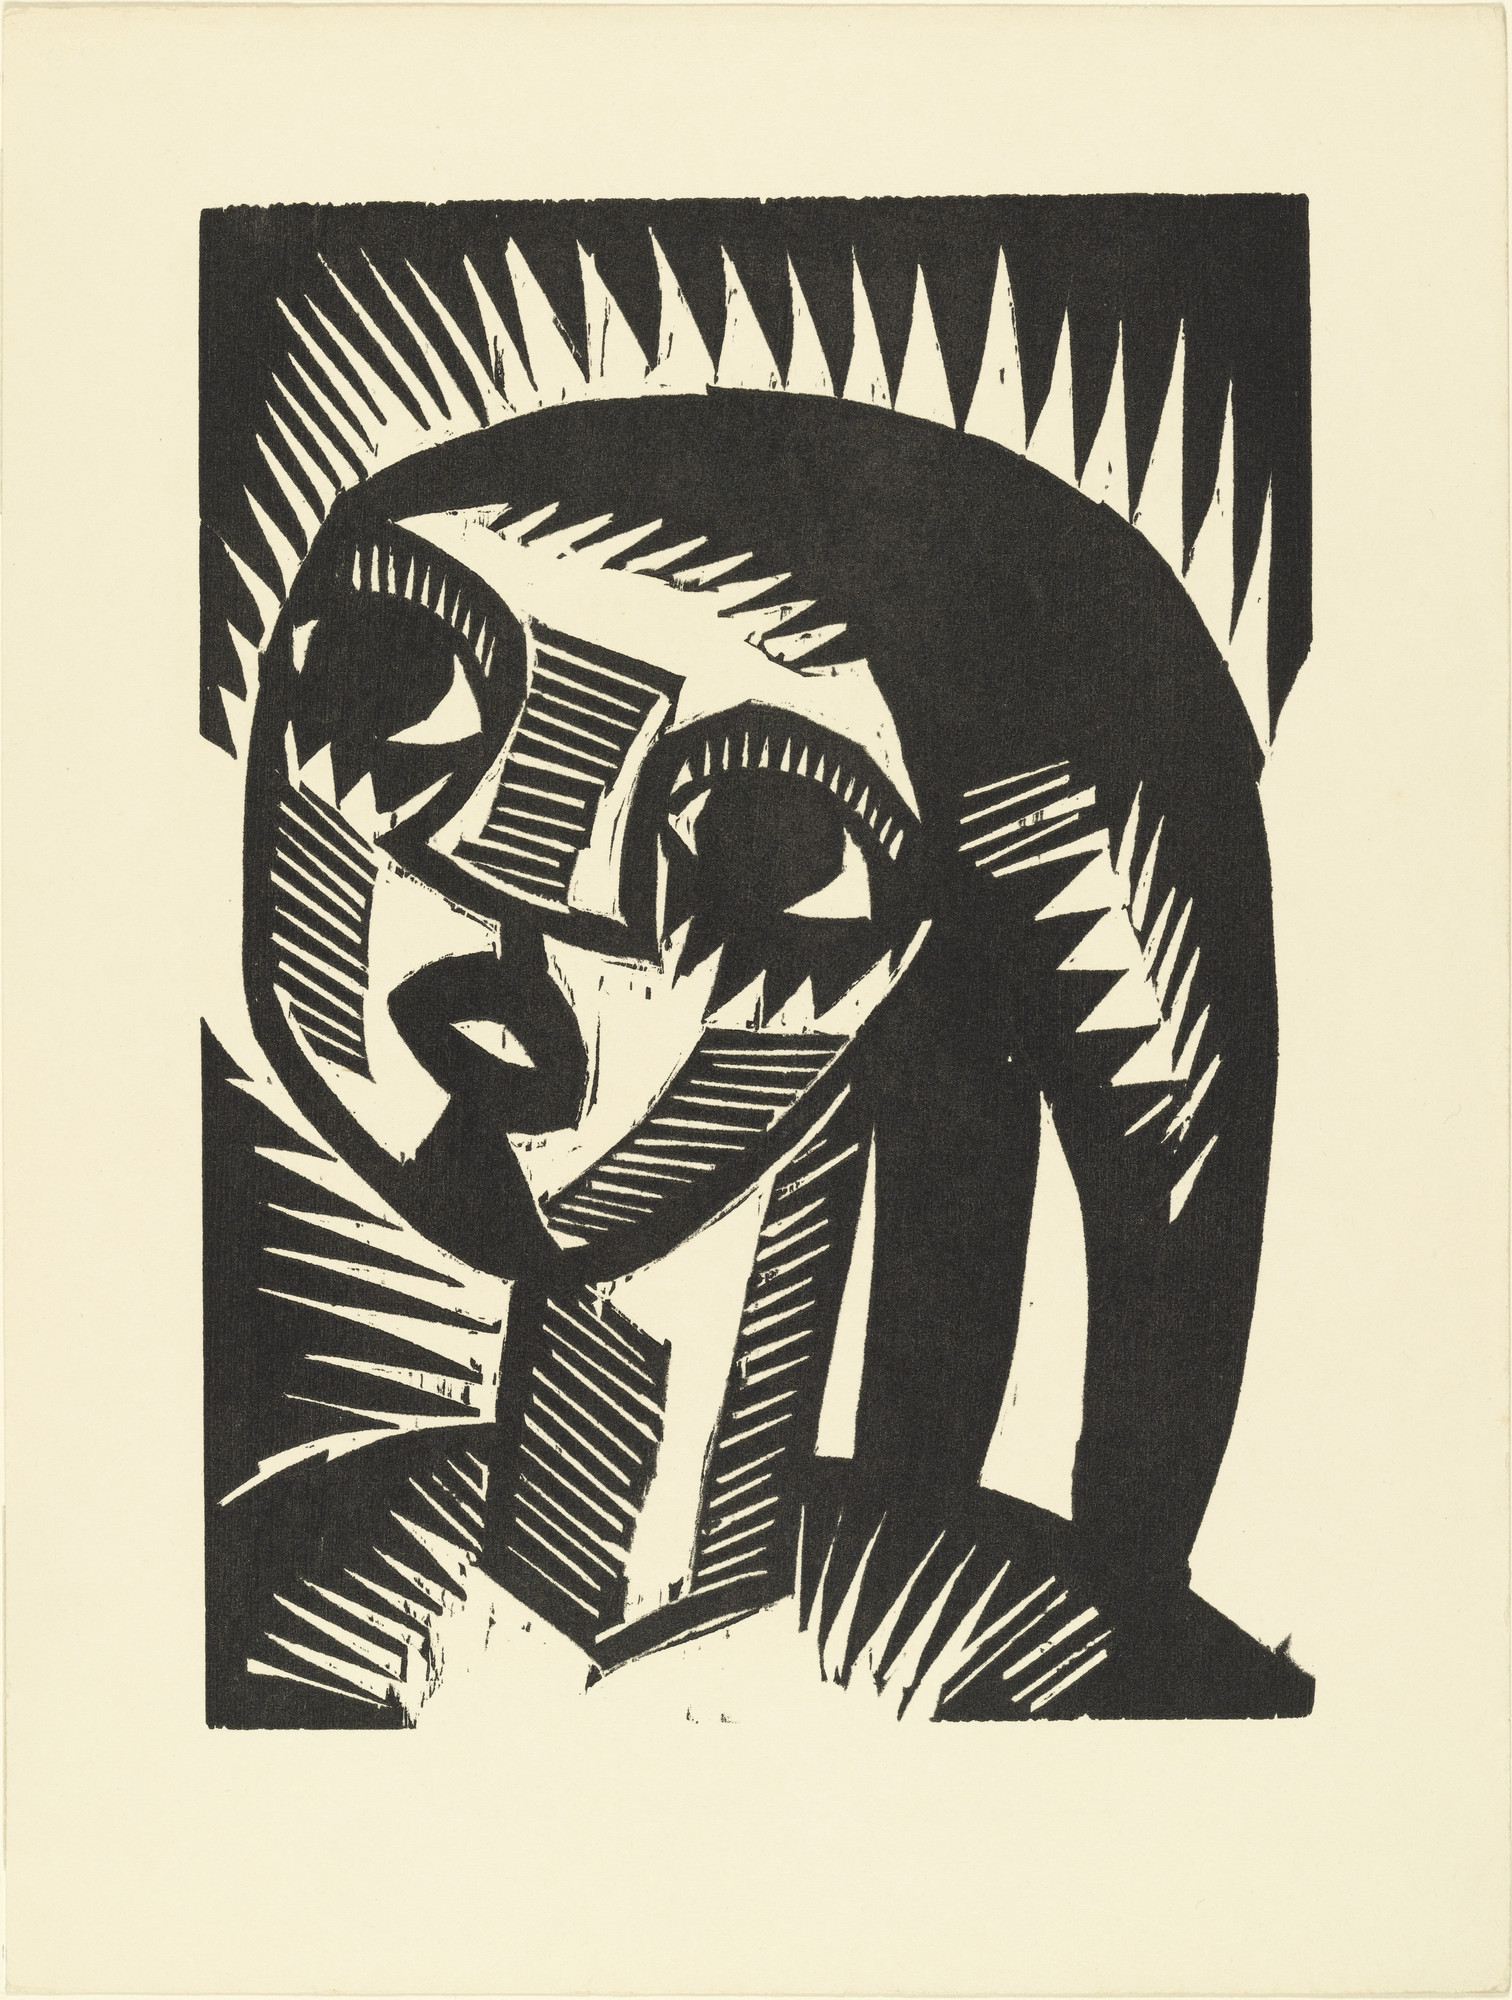 Karl Schmidt-Rottluff. Girl with Braids (Mädchen mit Zöpfen) (plate, loose leaf) from the periodical Das Kunstblatt, vol. 2, no. 2 (Feb 1918). 1918 (executed 1917)